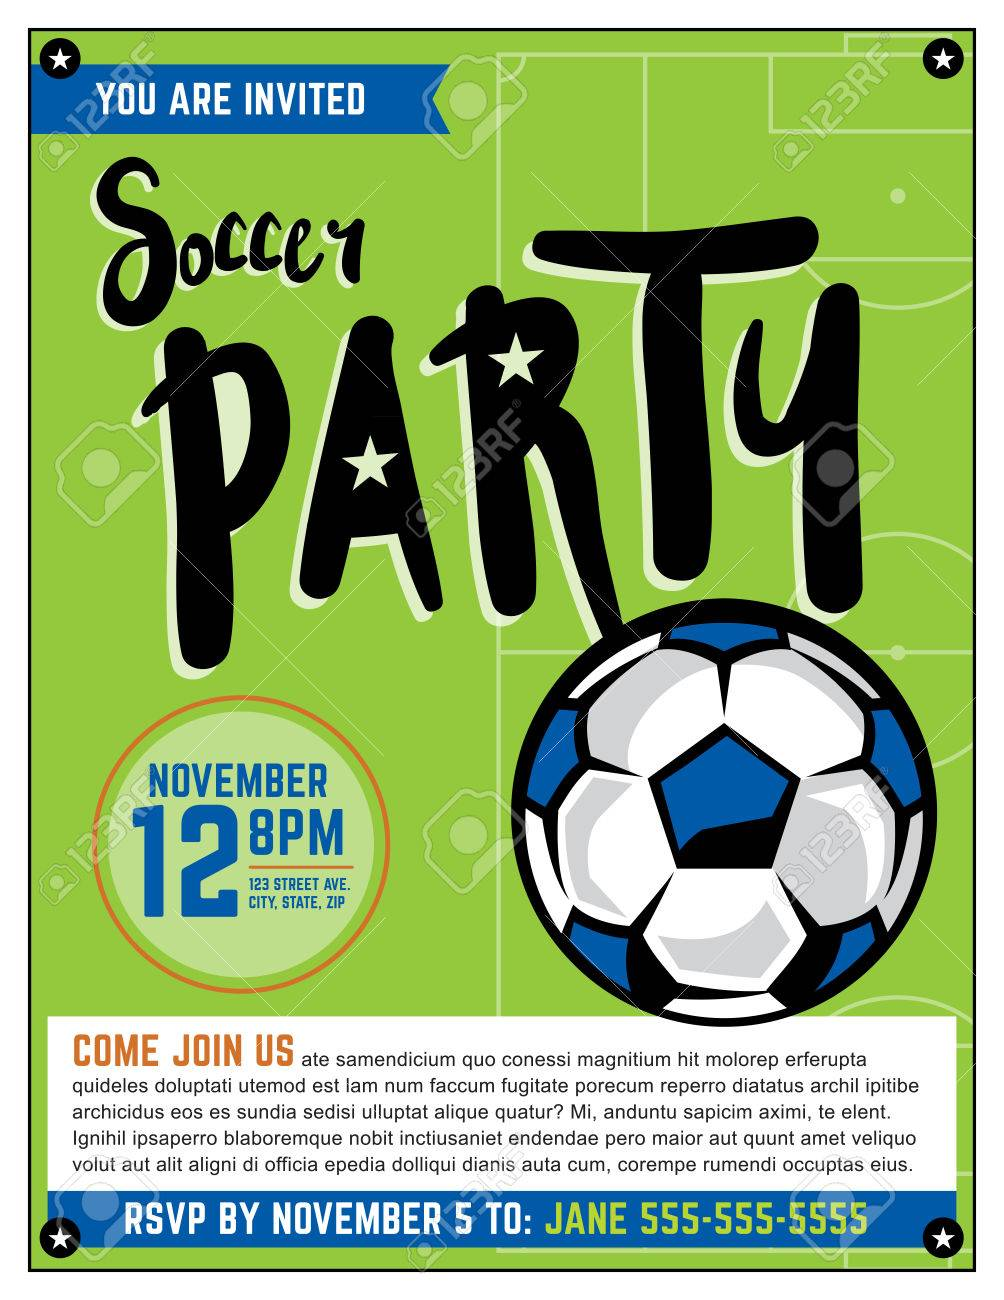 a soccer party theme invitation template royalty free cliparts